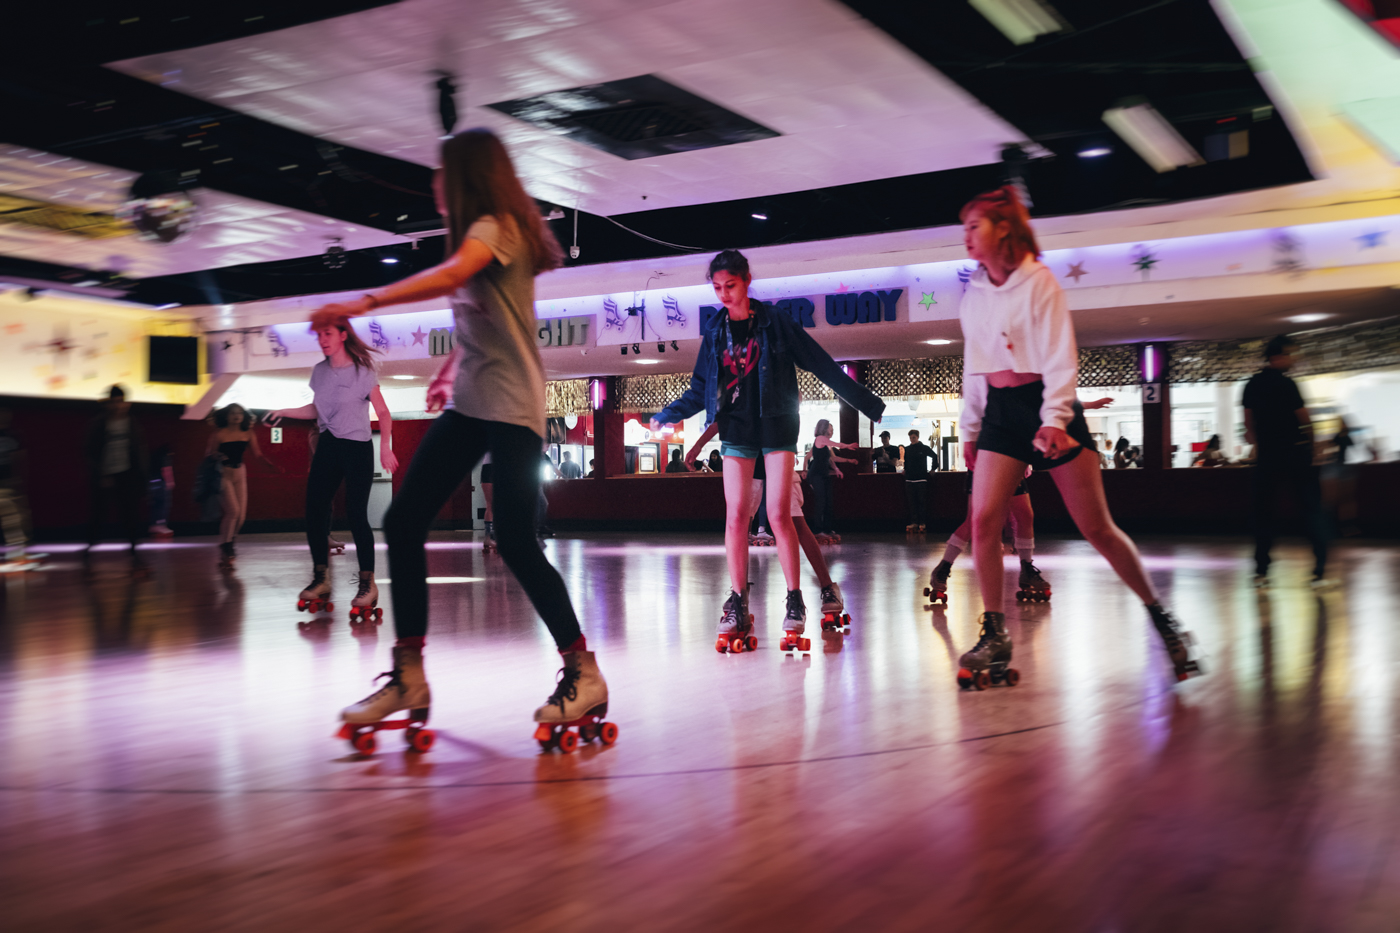 Whatever is your level, you can really have fun with friends on the Moonlight Rollerway rink. Former skaters who have been used to the place for 30 years are happy to meet the newbies.